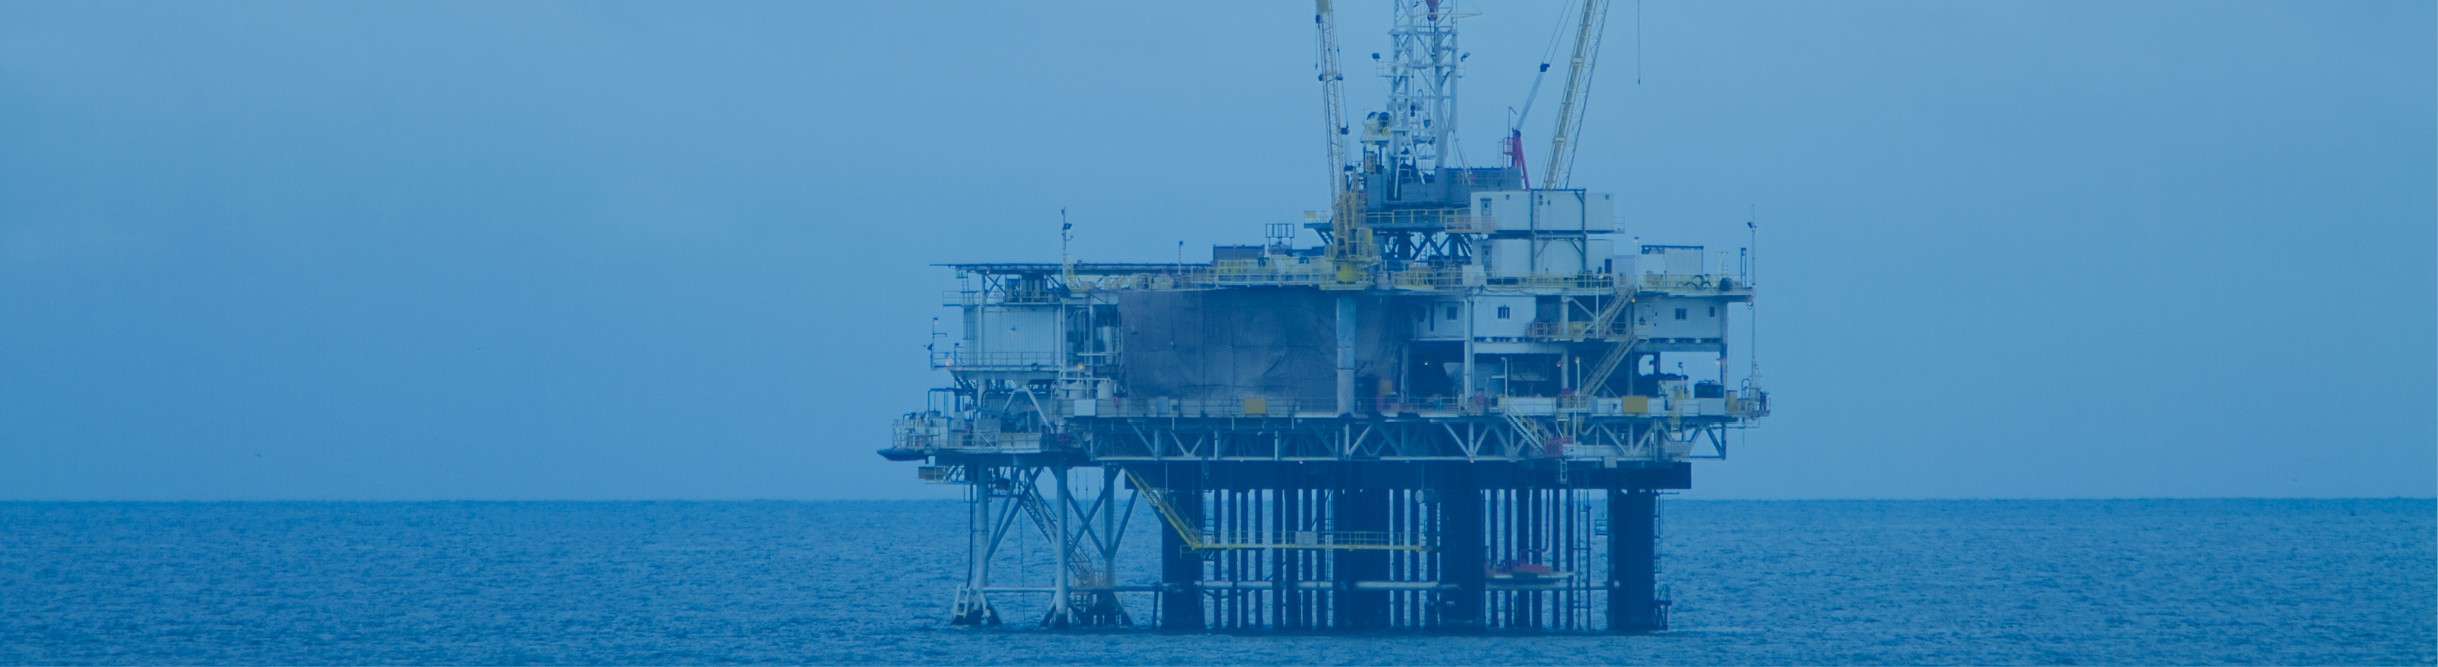 https://www.ims-expertservices.com/wp-content/uploads/2019/07/Case-Study-Banner-Deep-Water-Oil-Rig.jpg